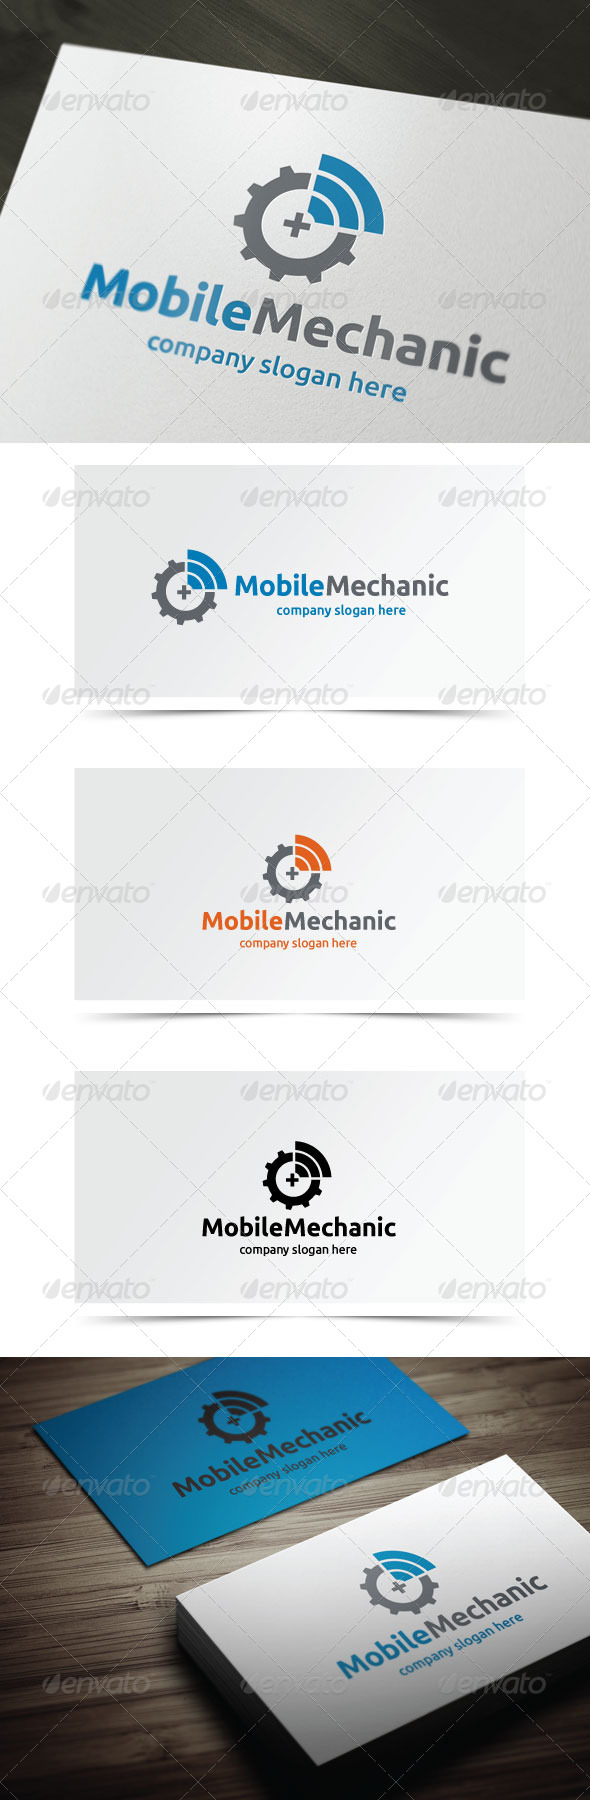 GraphicRiver Mobile Mechanic 6059242